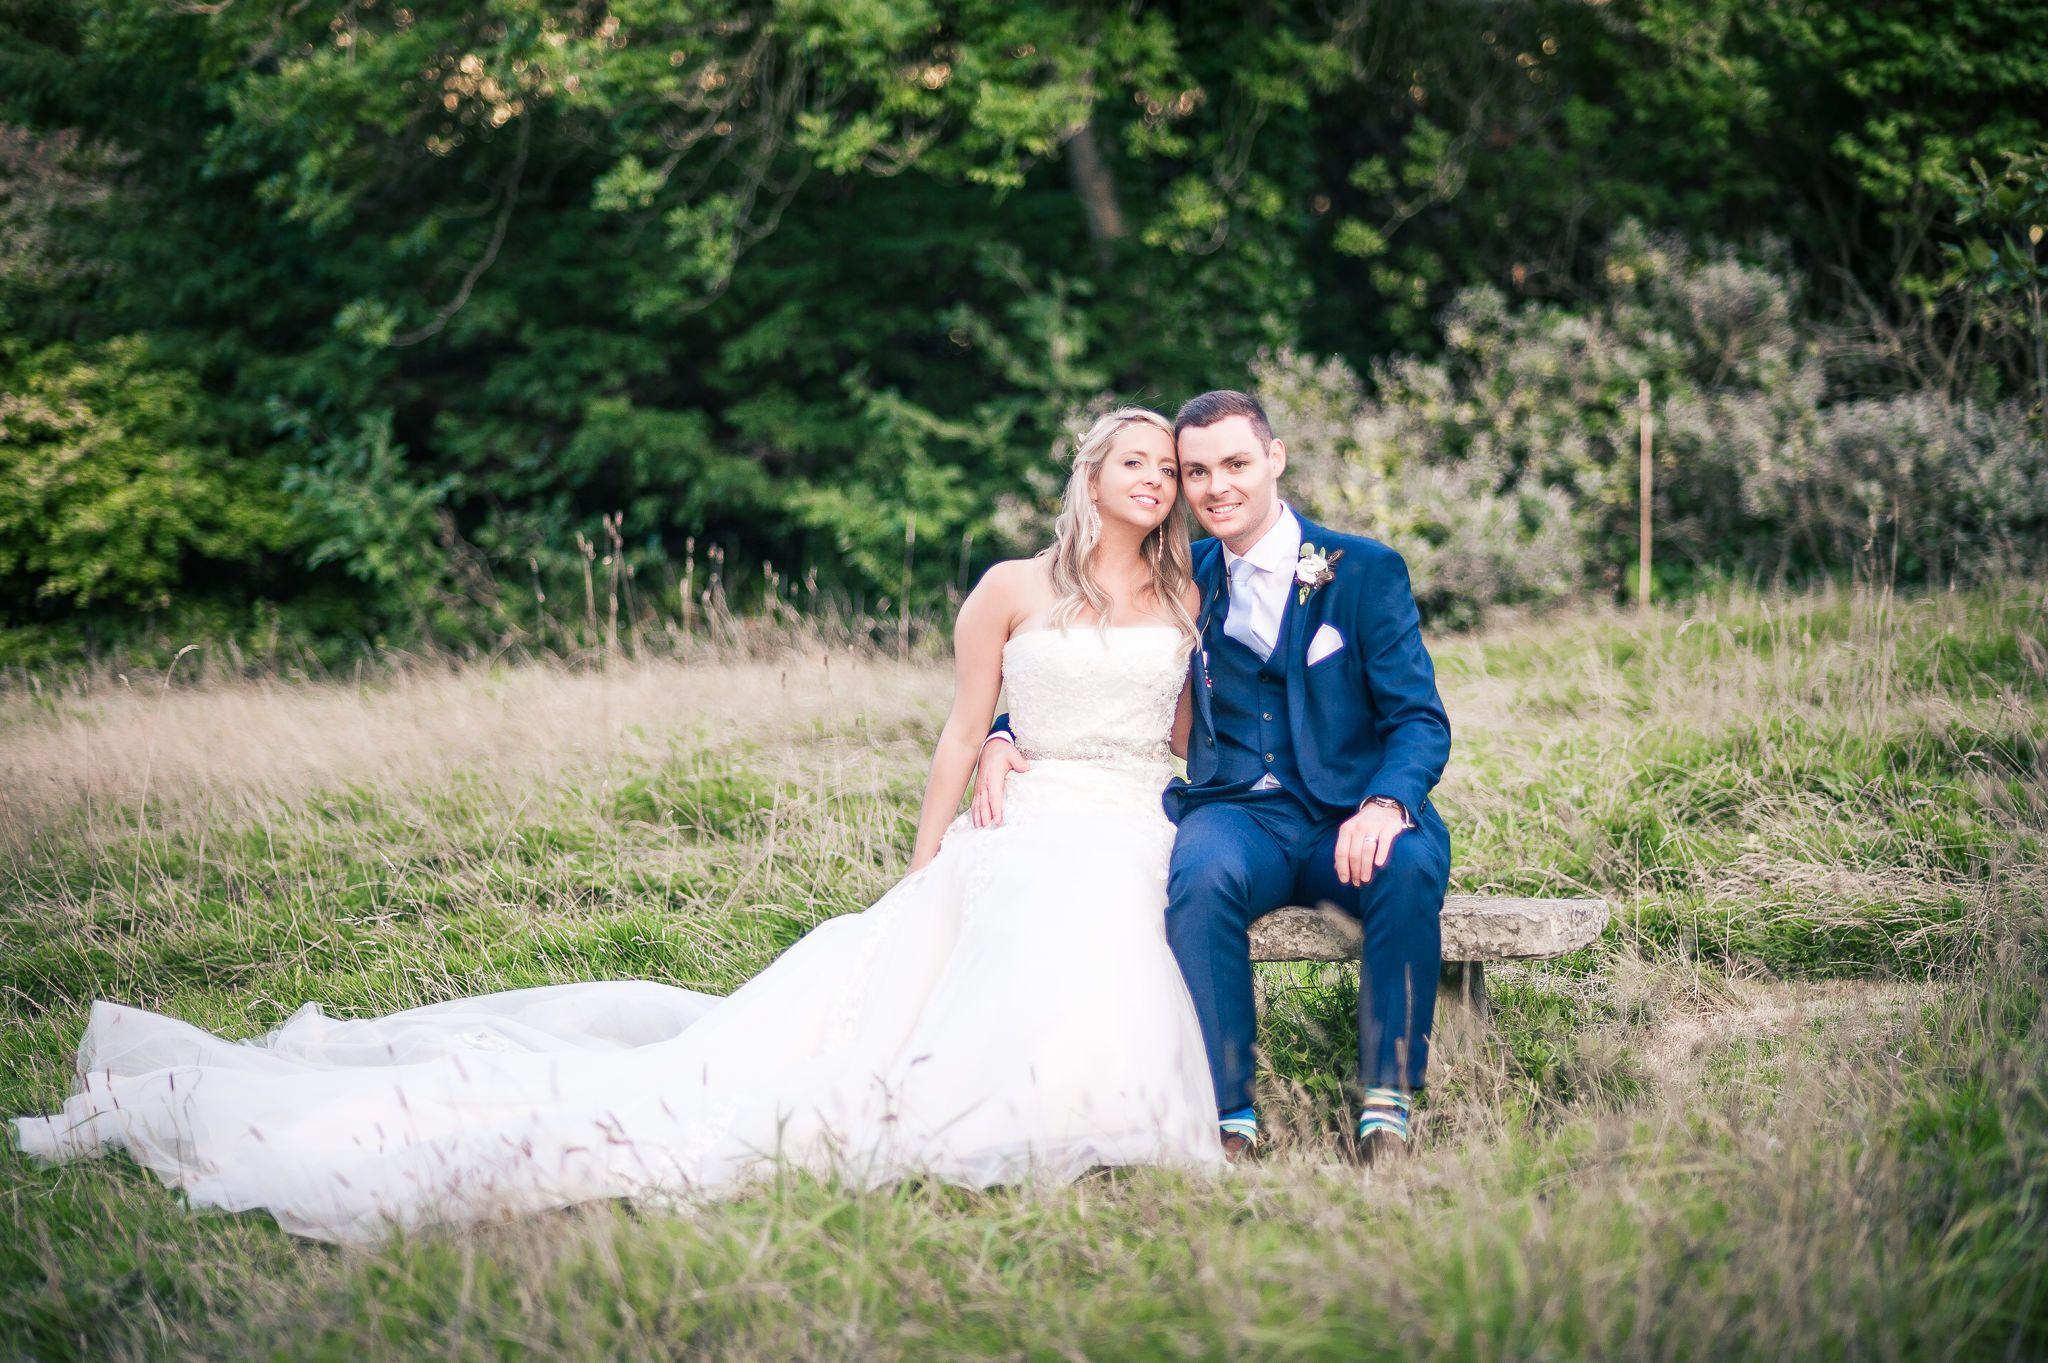 Ross wedding dress  Pines Calyx wedding of Antonia and Ross  Pinterest  Wedding and